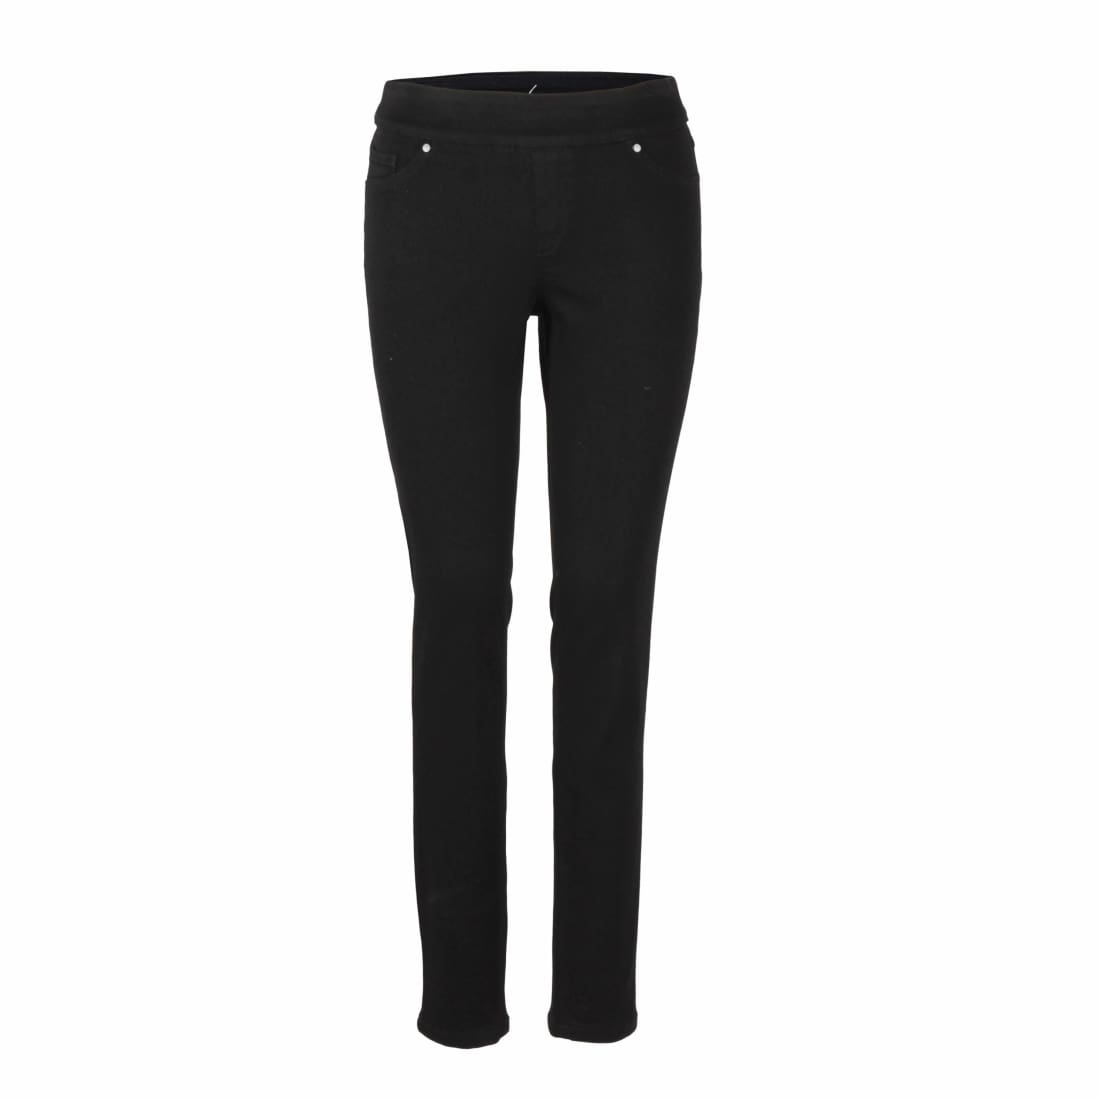 Up! Pants Womens Jet Black Skinny Jean Pull On Pant 8 Jeans